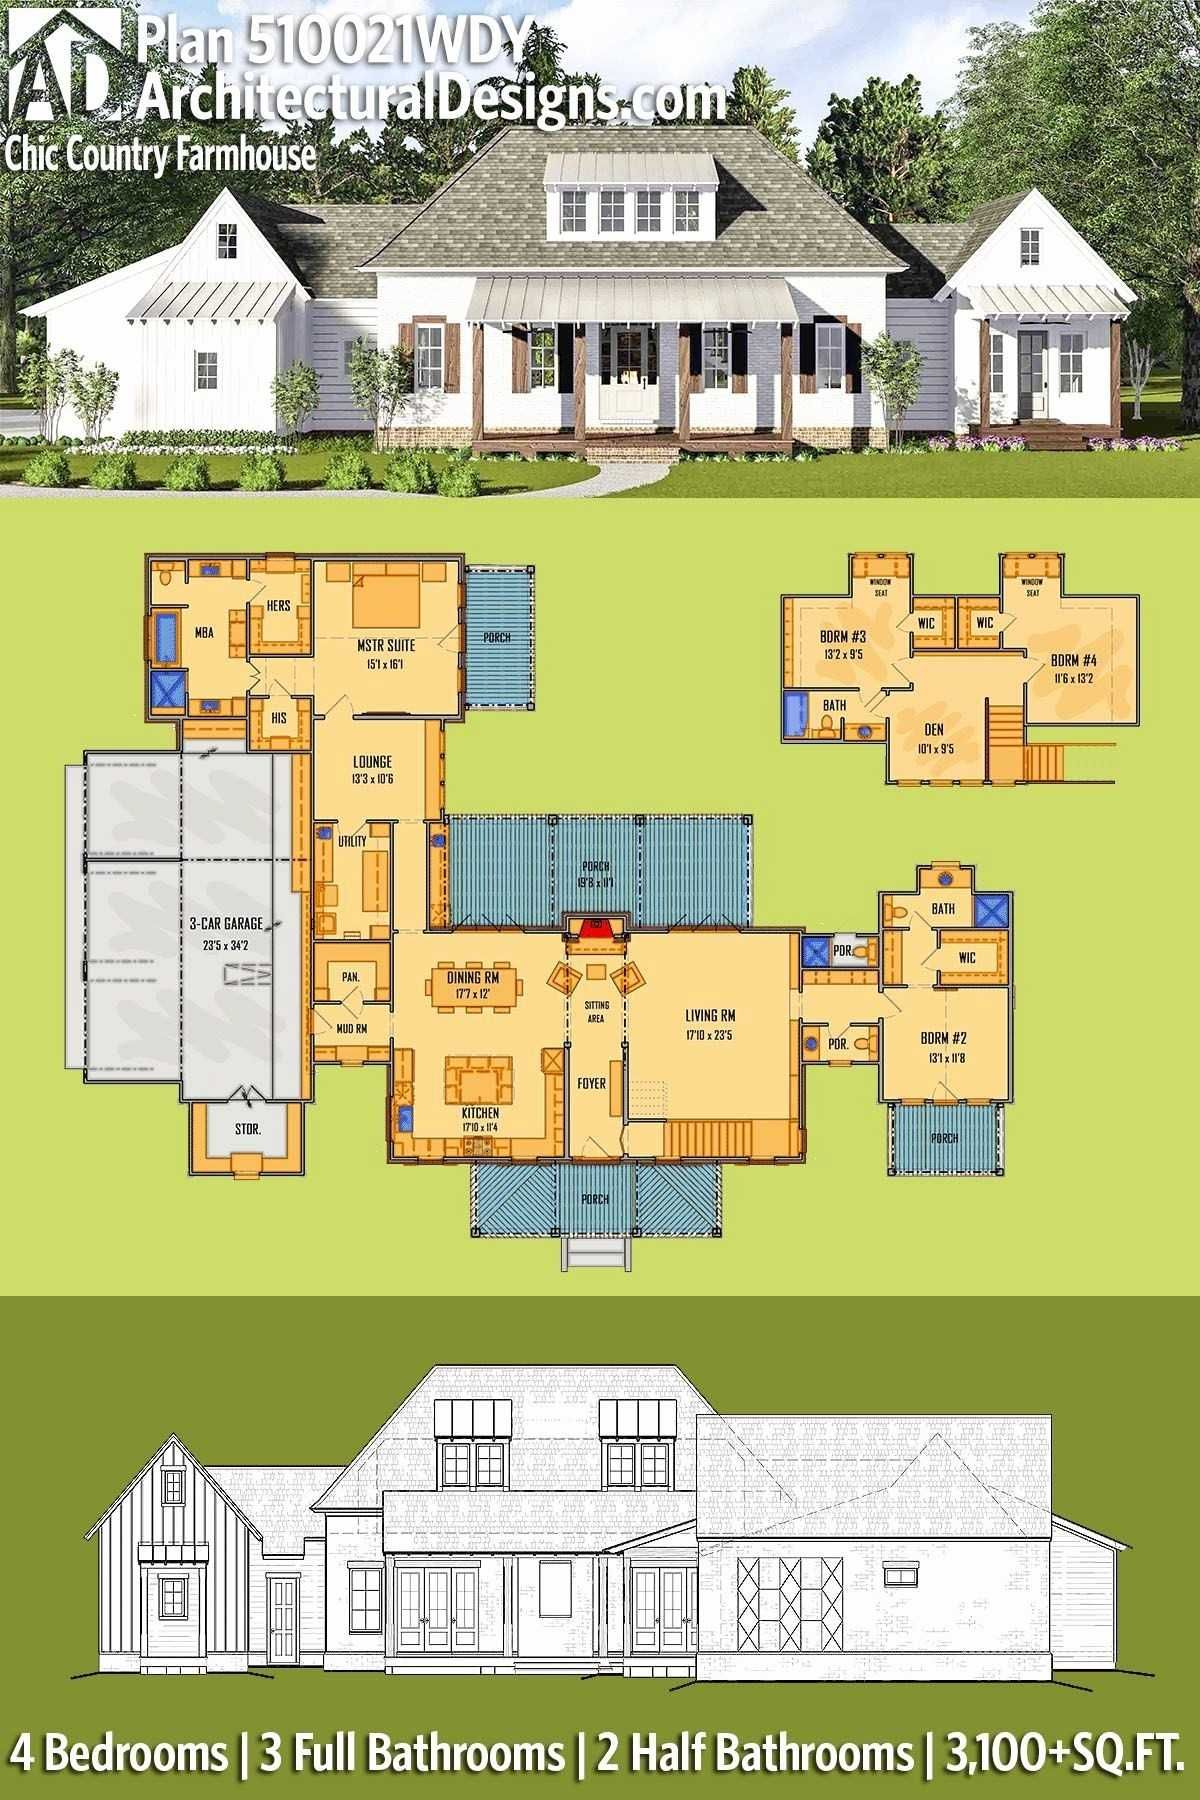 Single Story Modern Farmhouse Open Floor Plans Unique 20 Luxury Farmhouse House Plans House Plans Farmhouse Architectural Design House Plans House Blueprints